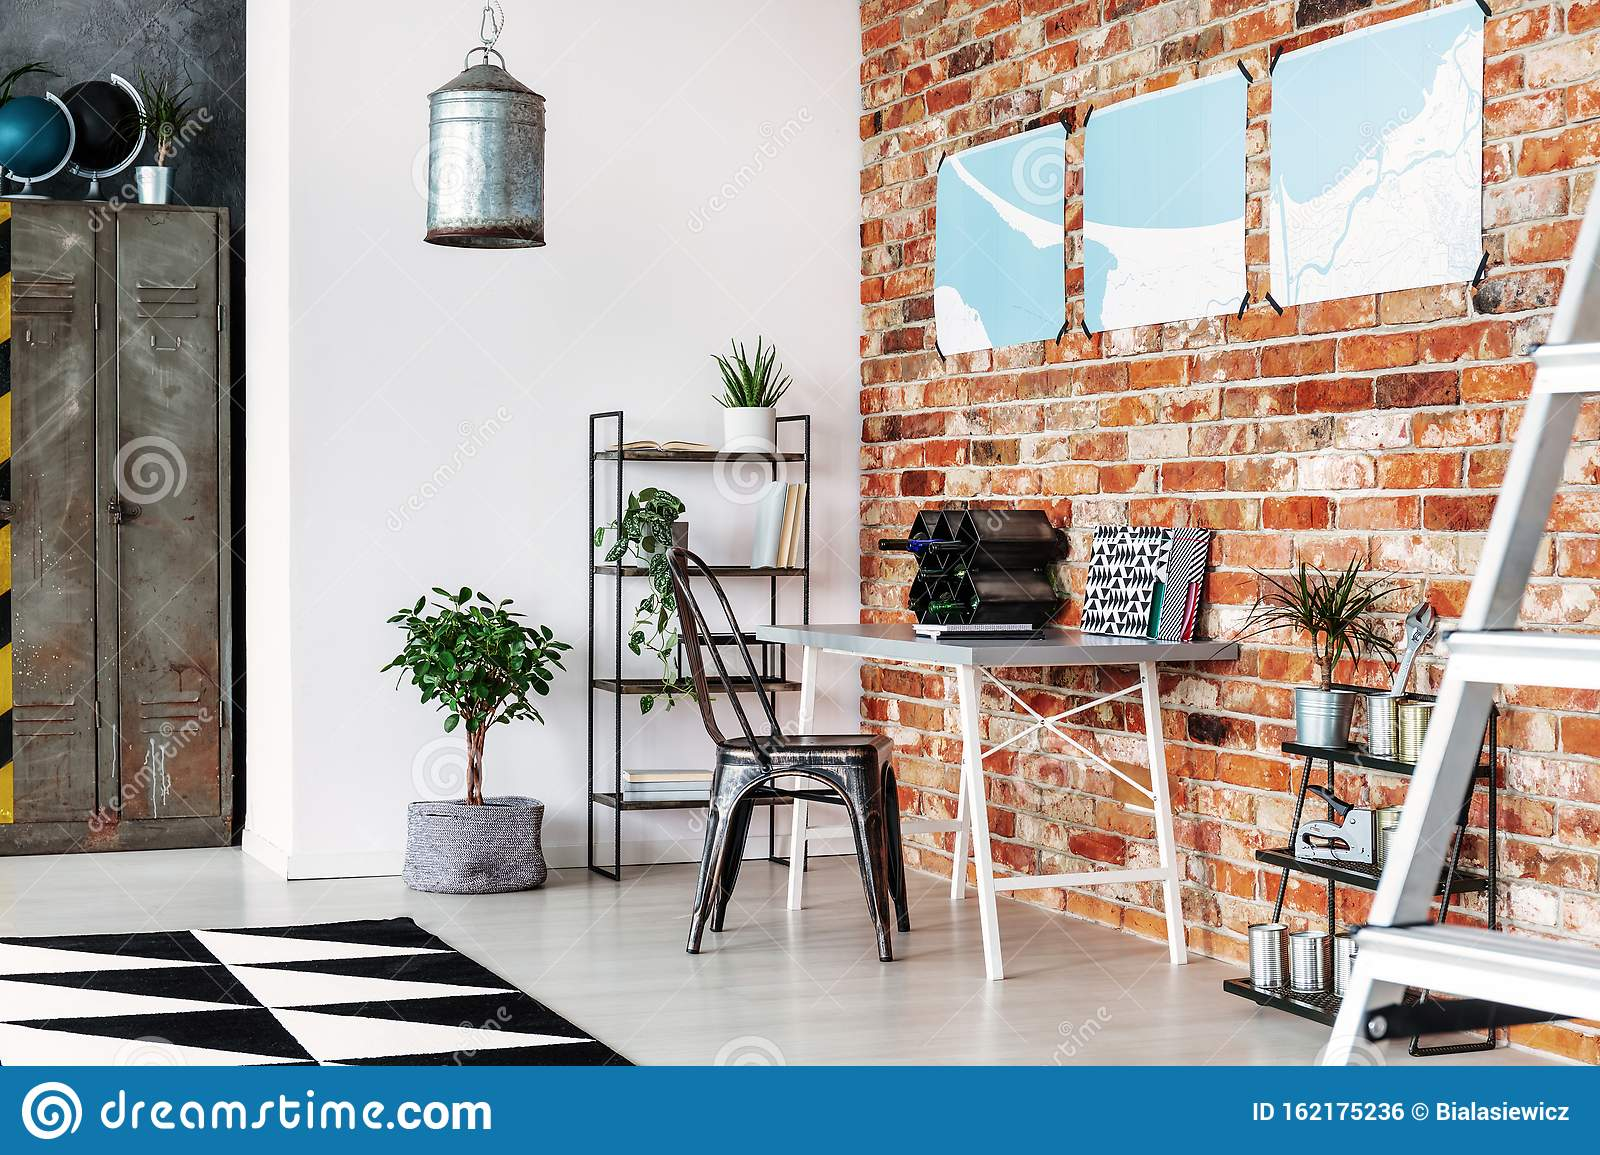 Maps On Brick Wall Of Industrial Home Office Stock Photo Image Of Rack Stylish 162175236